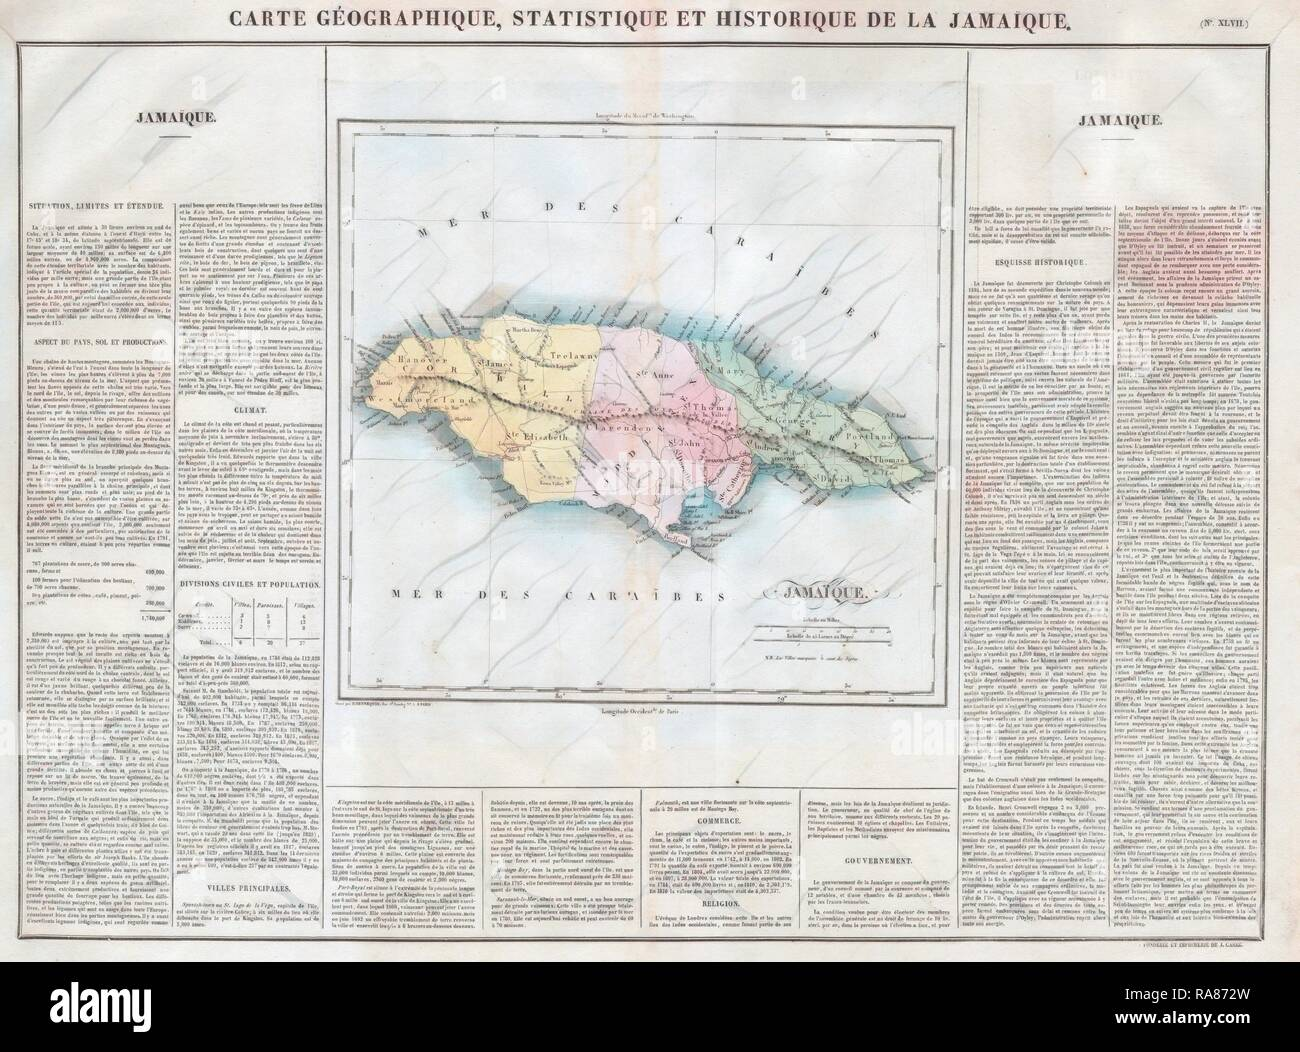 Carez Map of Jamaica, West Indies. Reimagined by Gibon. Classic art ...